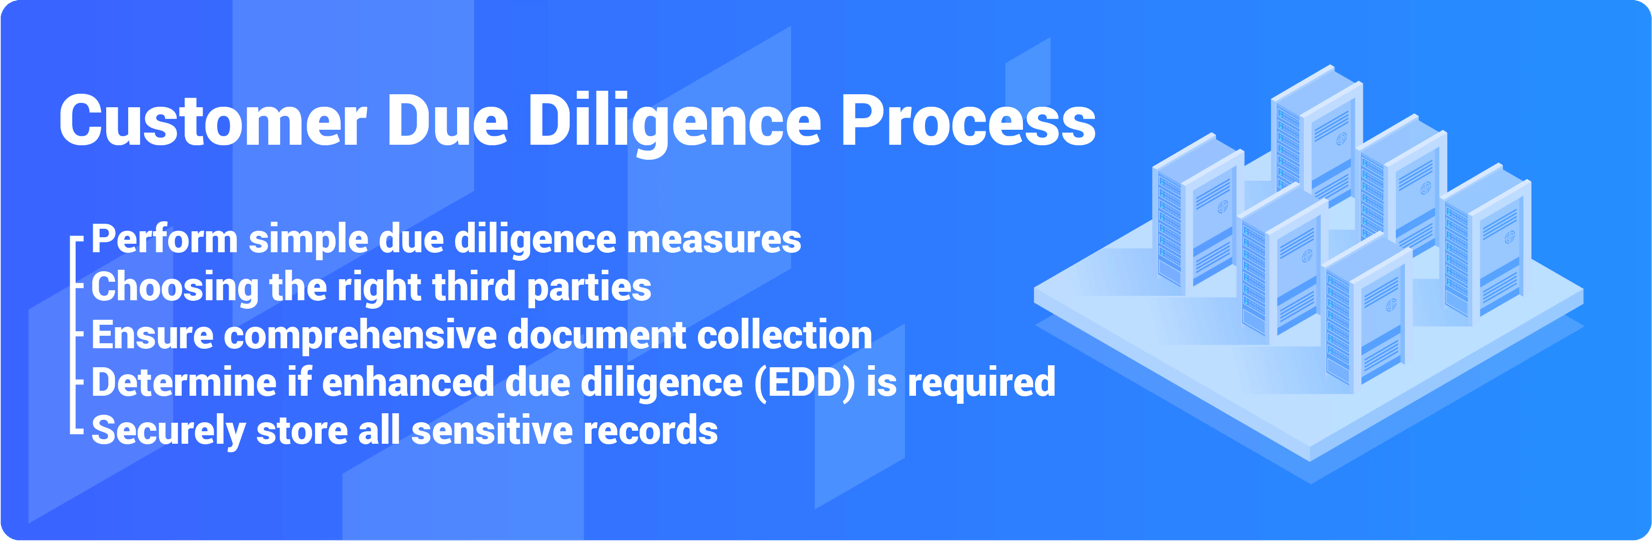 Customer Due Diligence Process